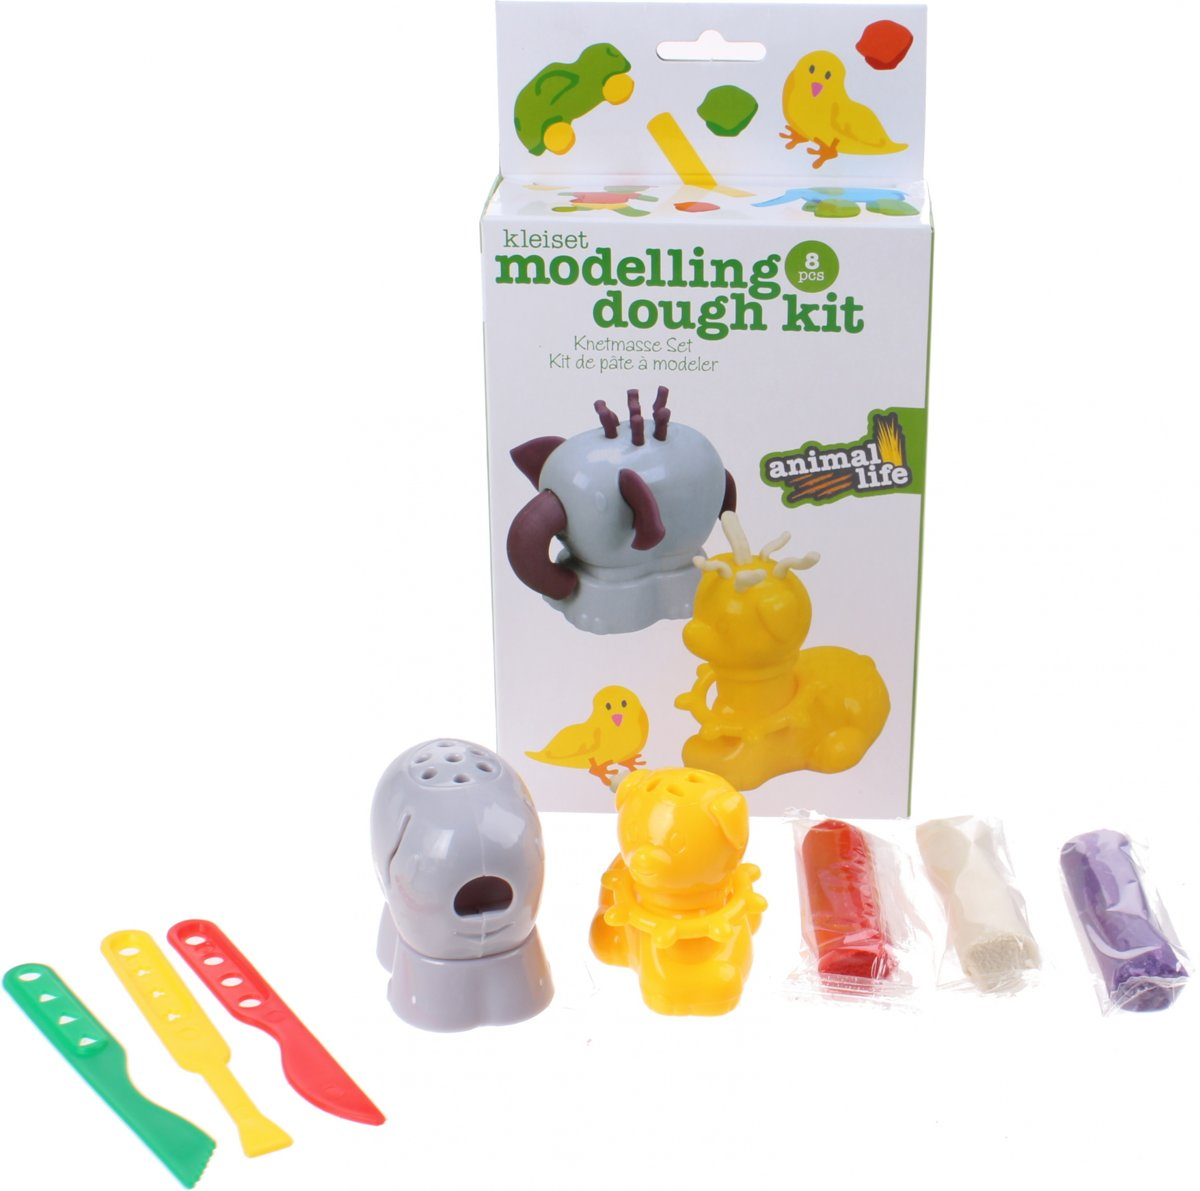 Free And Easy Kleiset Moddeling Dough Kit Groen 8-delig